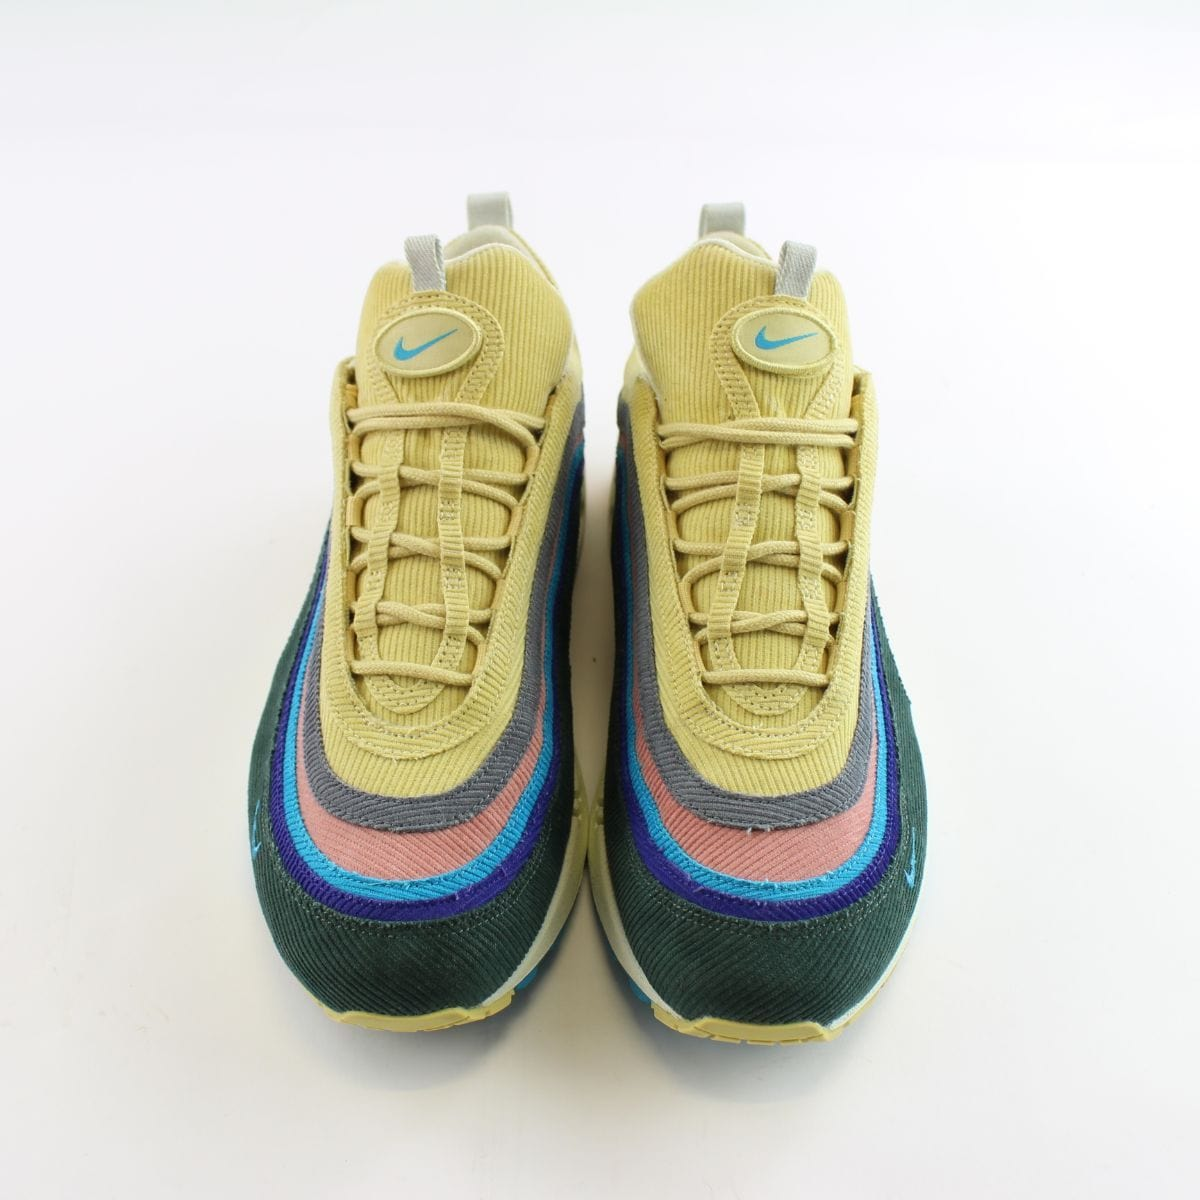 Nike x Sean Wotherspoon AM97/1